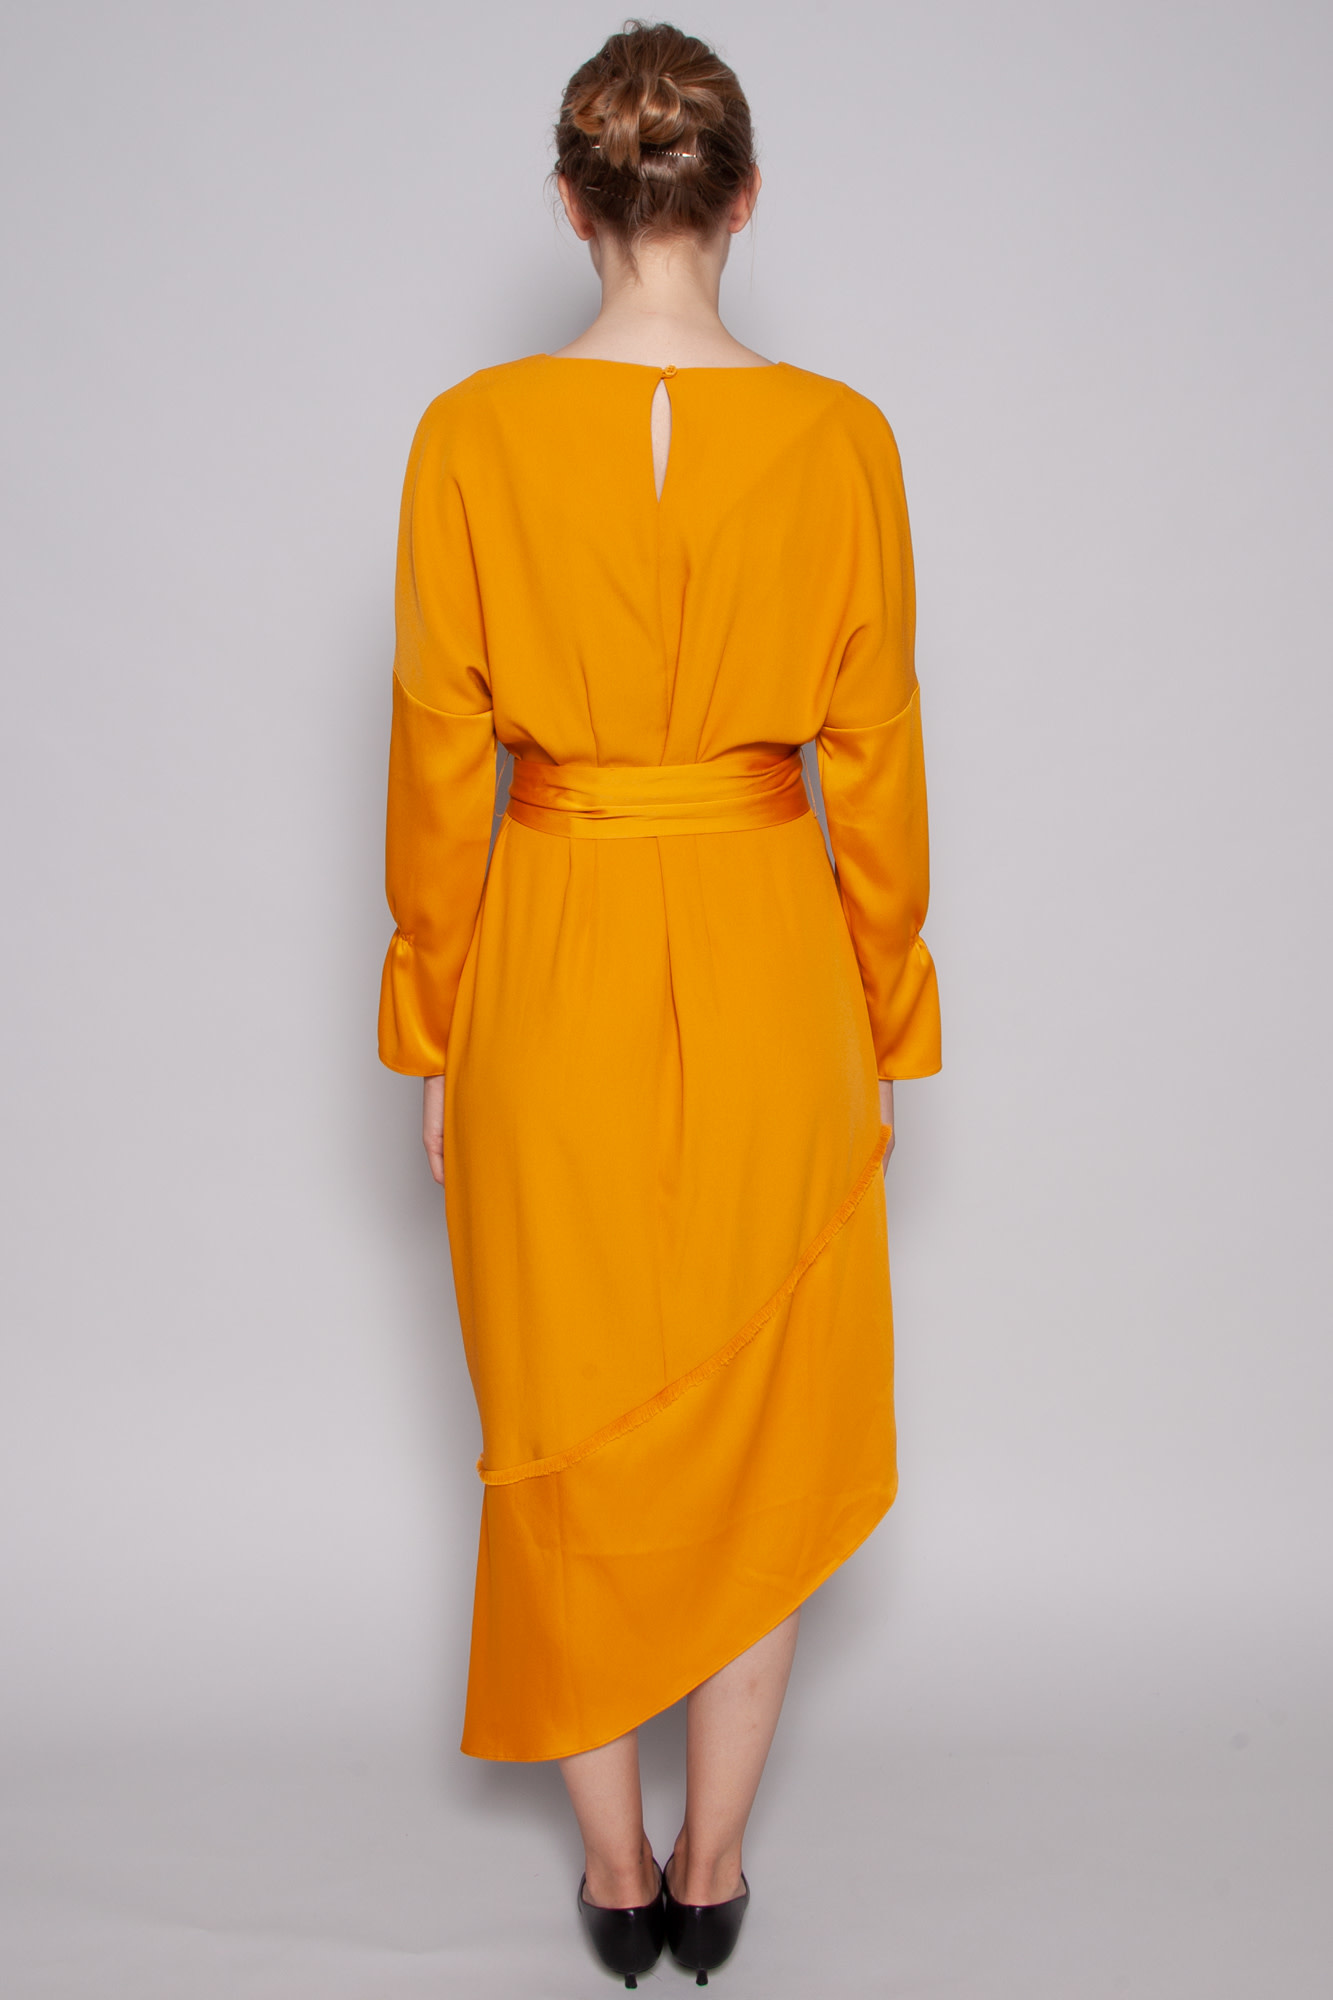 Charli MUSTARD YELLOW ASYMMETRIC BOTTOM DRESS - NEW WITH TAG